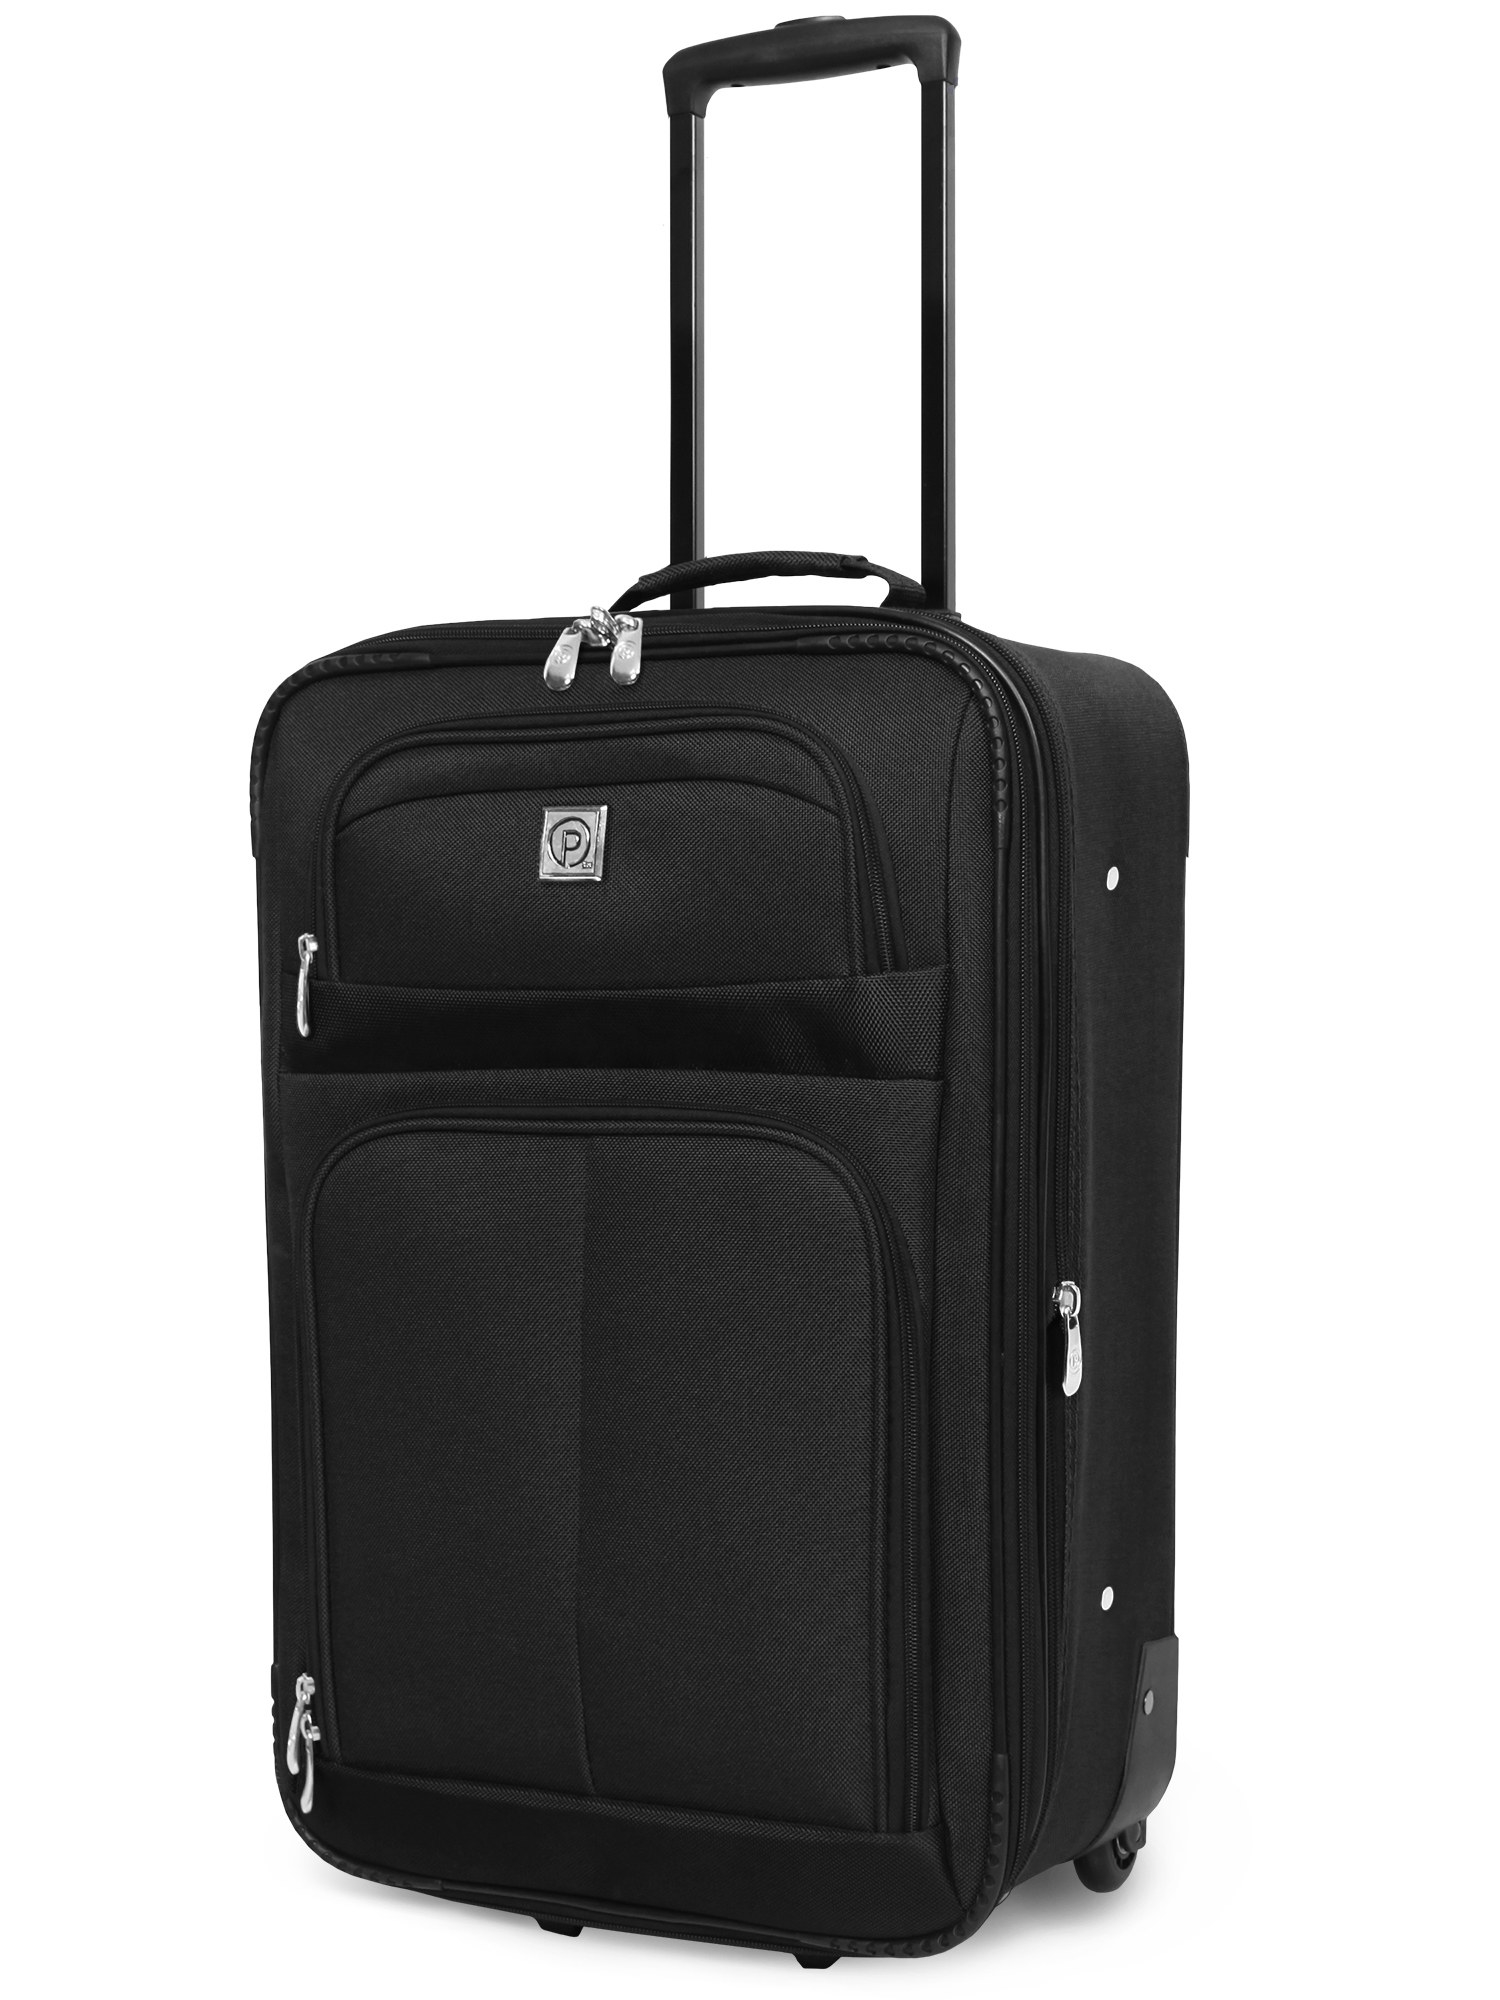 black upright rolling luggage